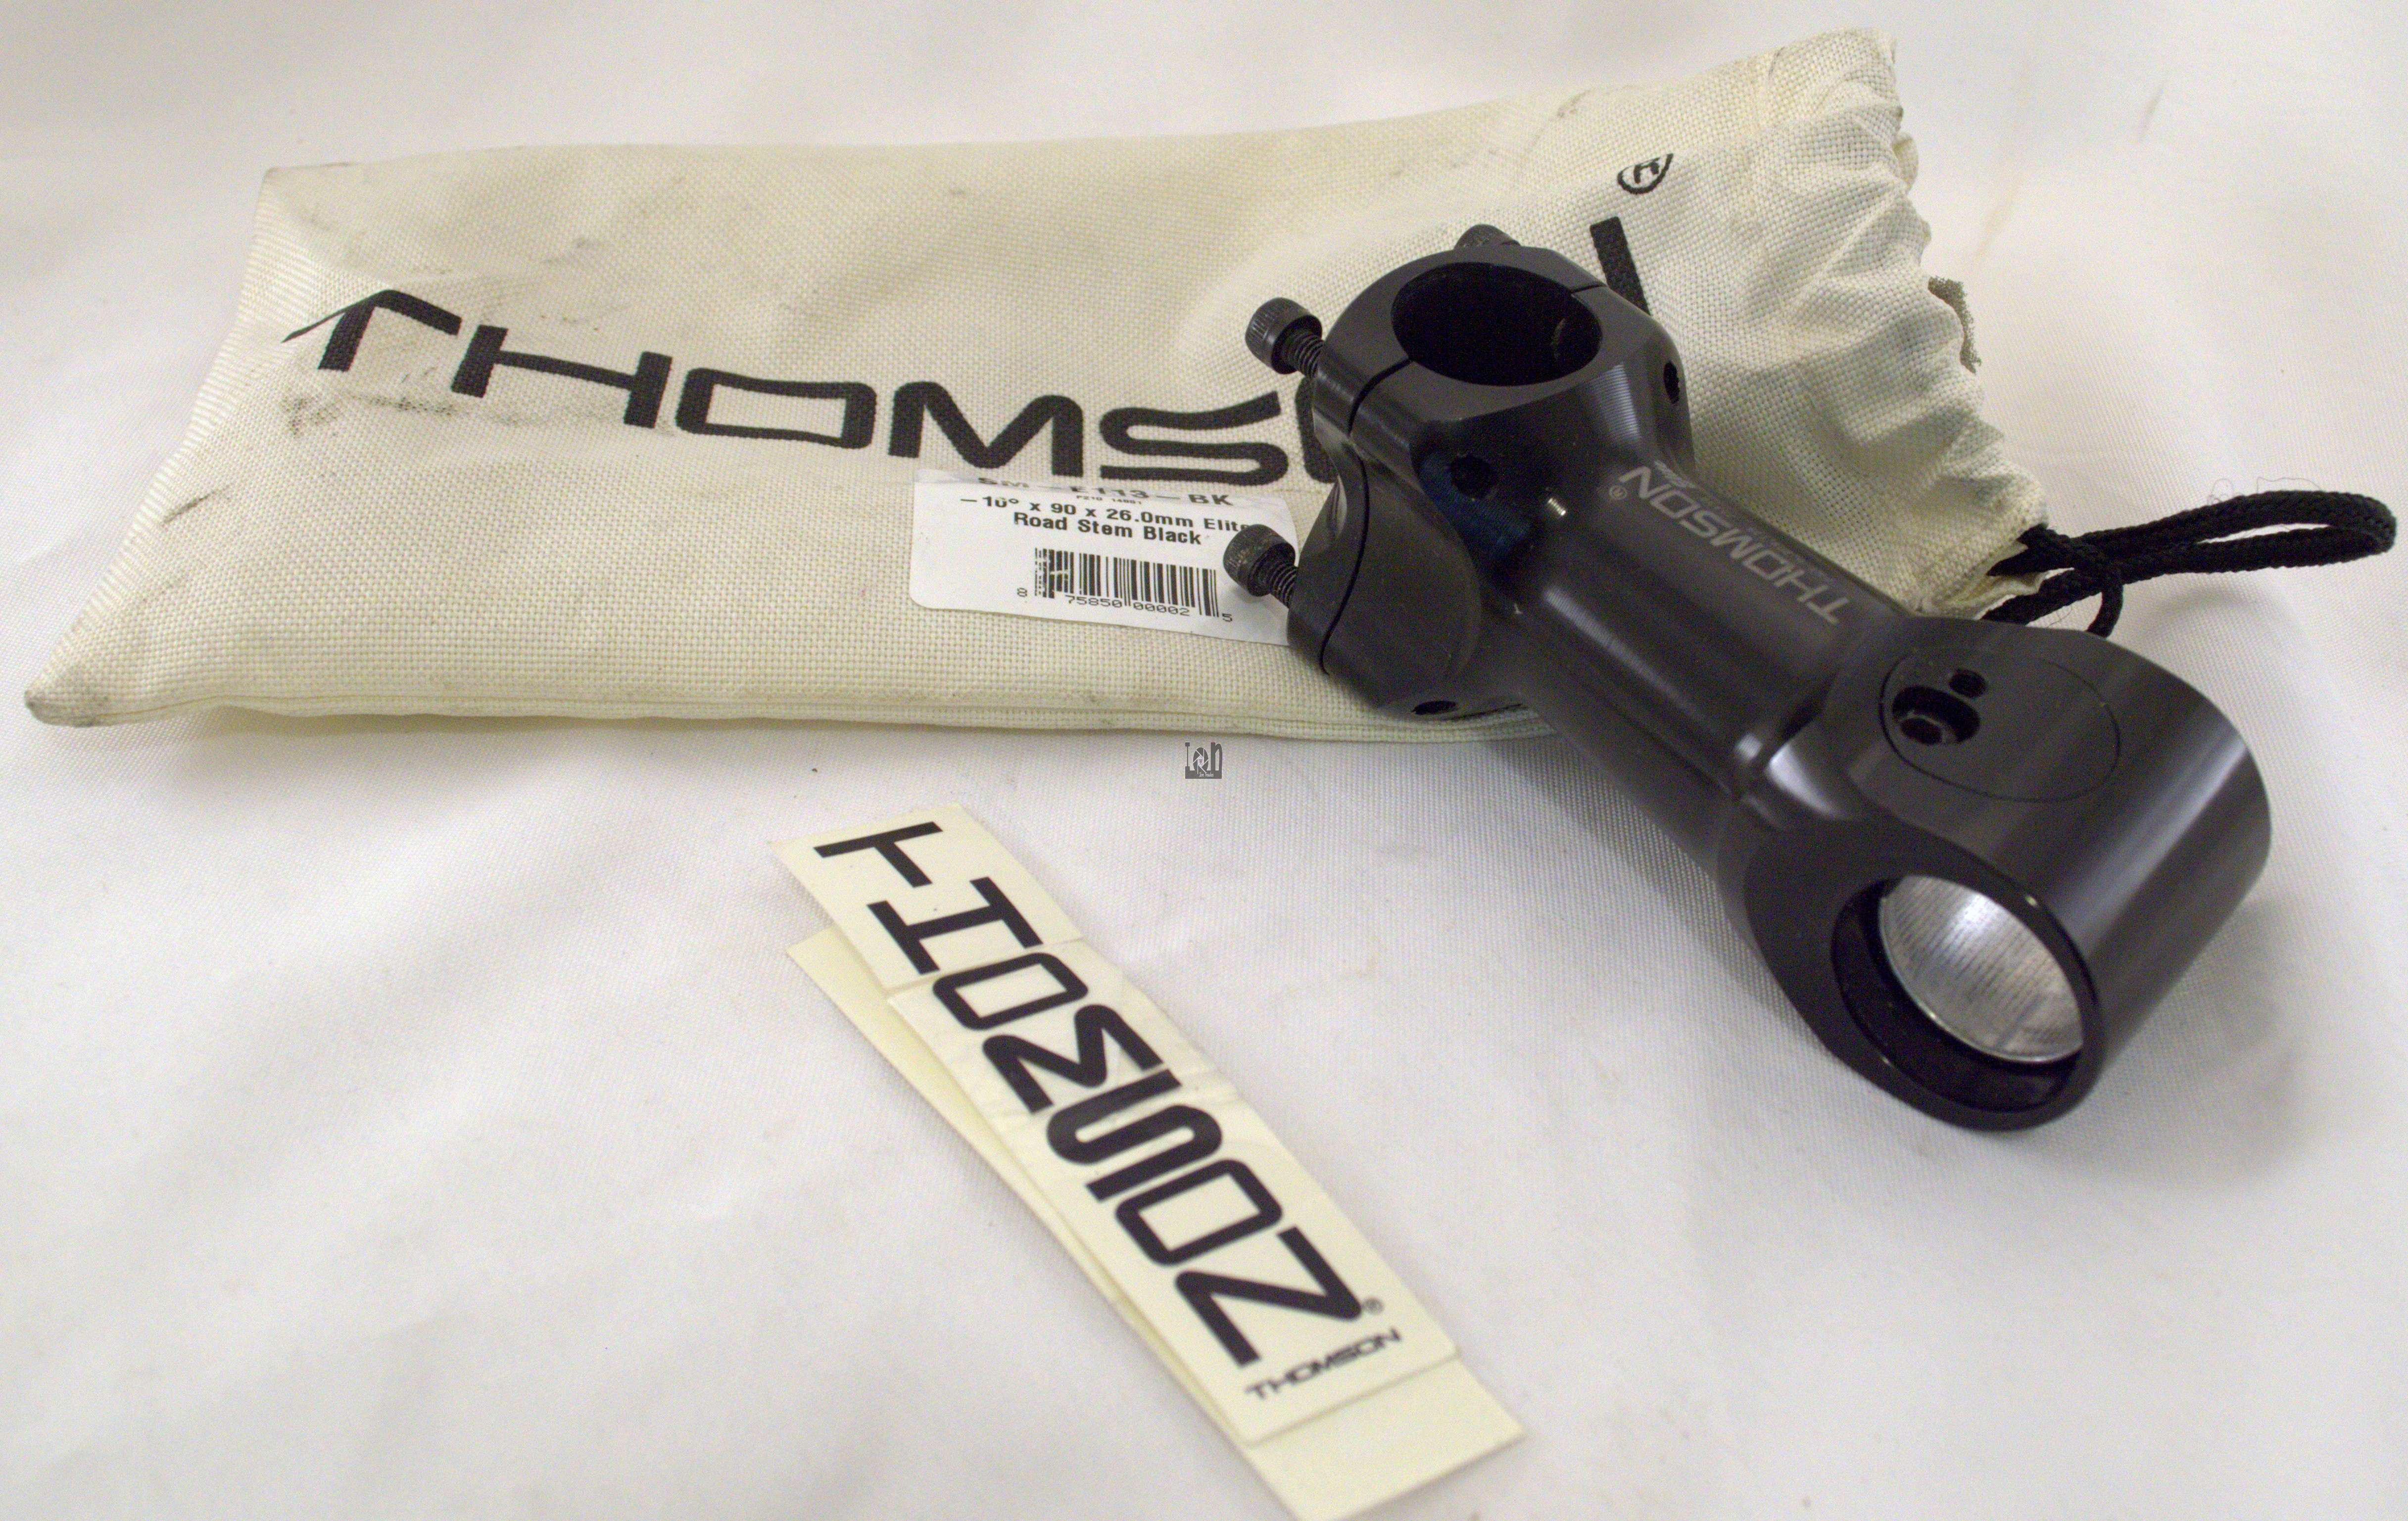 Thomson Road Stem Bicycle Parts 90mm x 26mm 10Degree